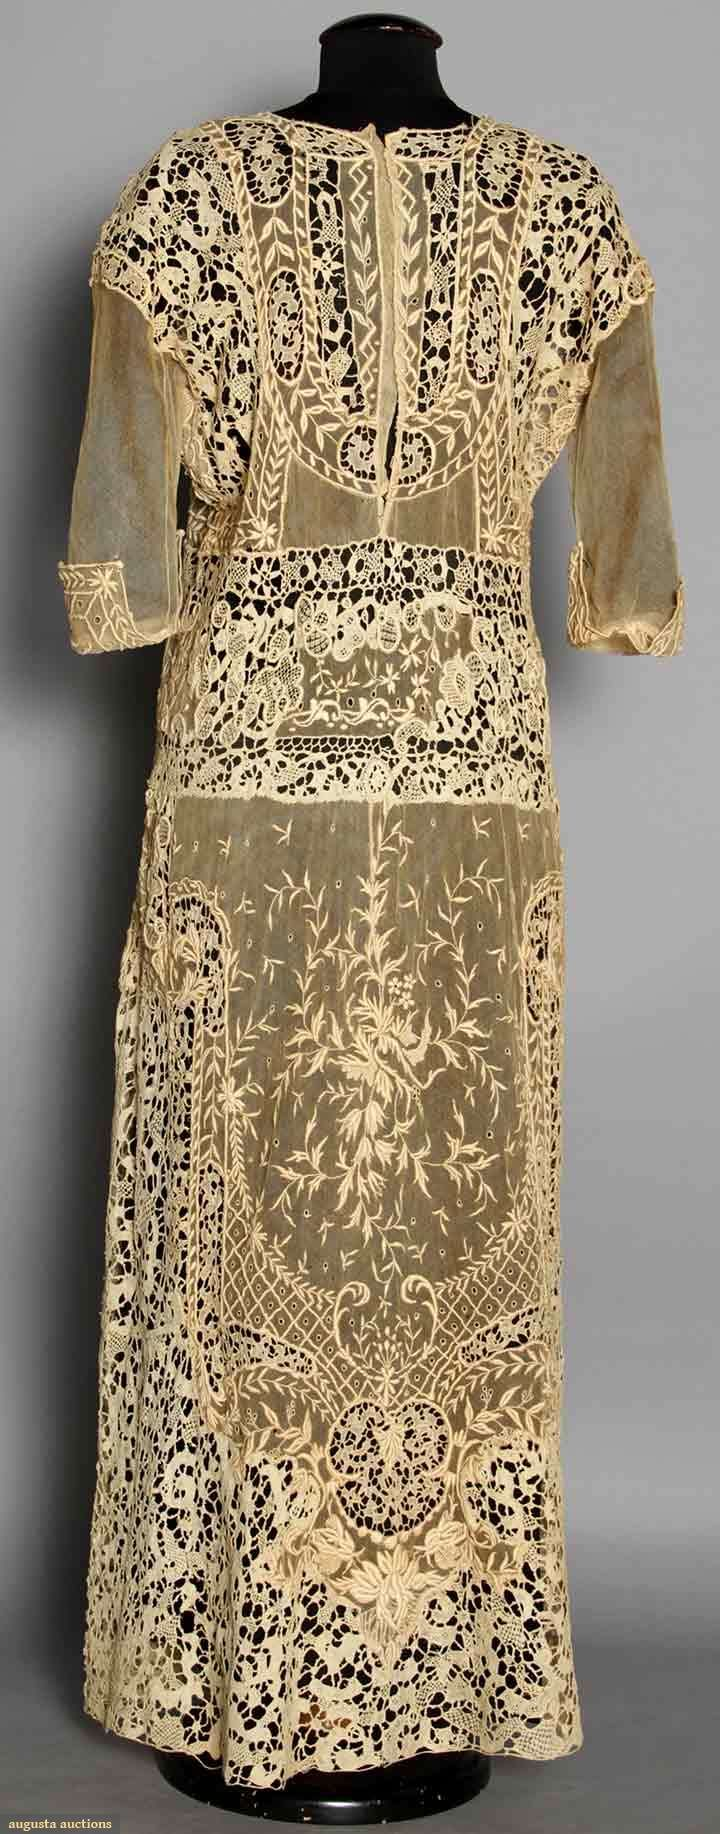 back detail - Lace Tea Gown, C. 1919, Patchwork of embroidery on net & needle lace.